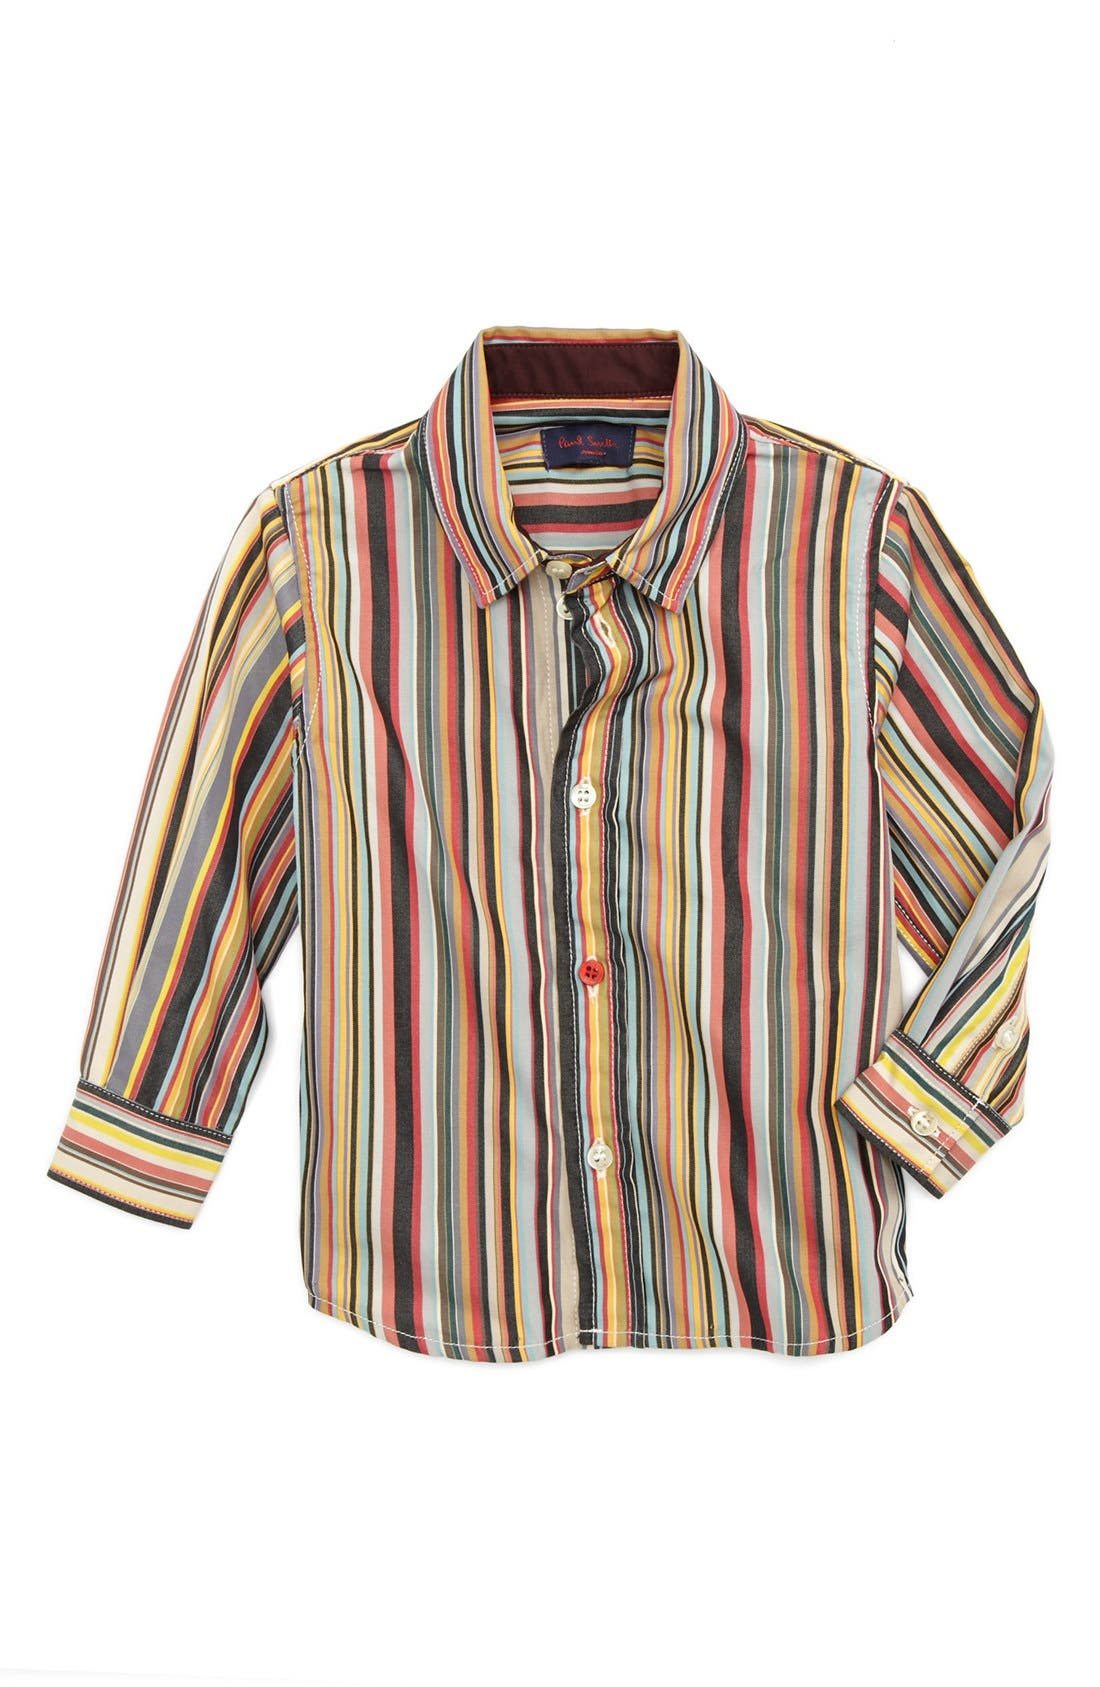 Alternate Image 1 Selected - Paul Smith Junior Sport Shirt (Baby Boys)